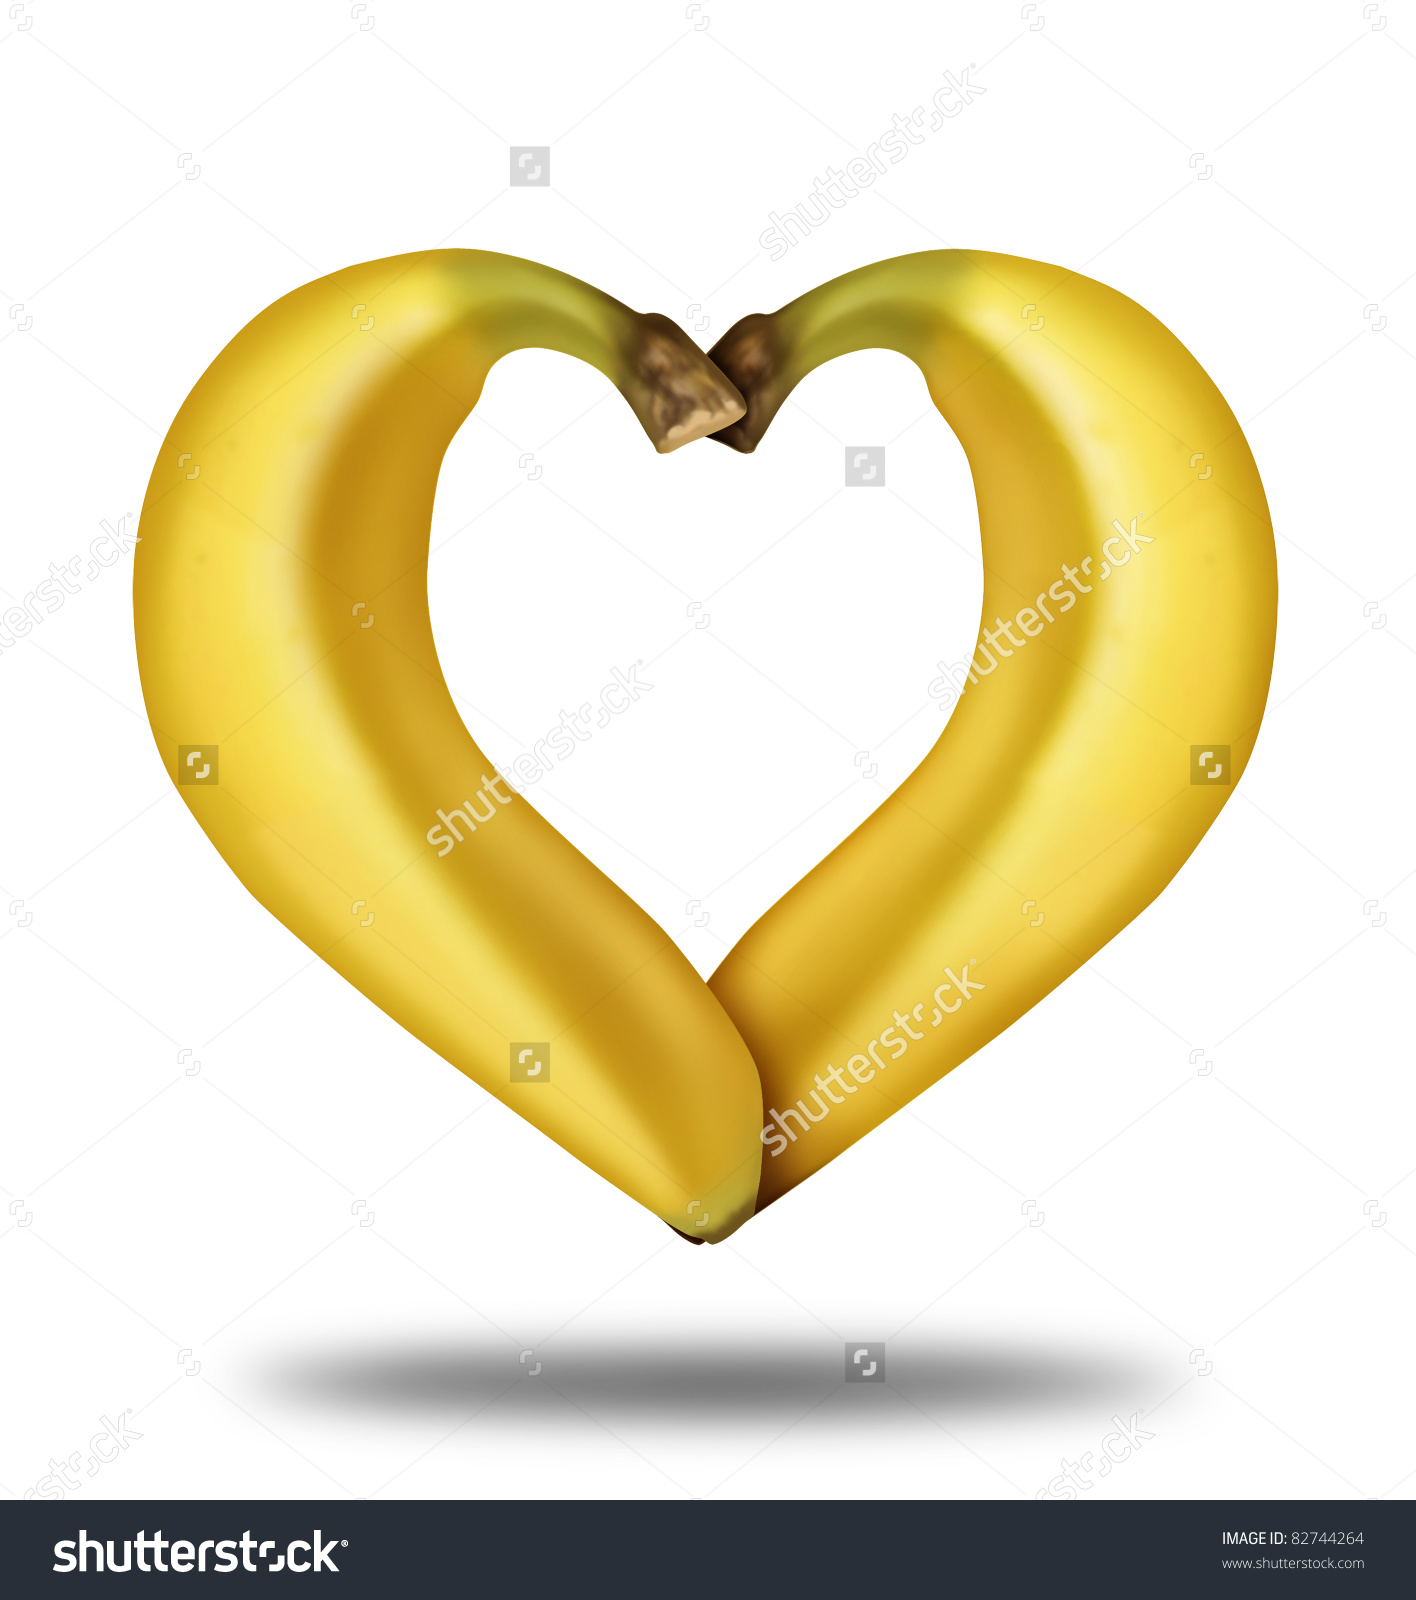 Healthy Food Symbol Represented By Bananas Stock Illustration.